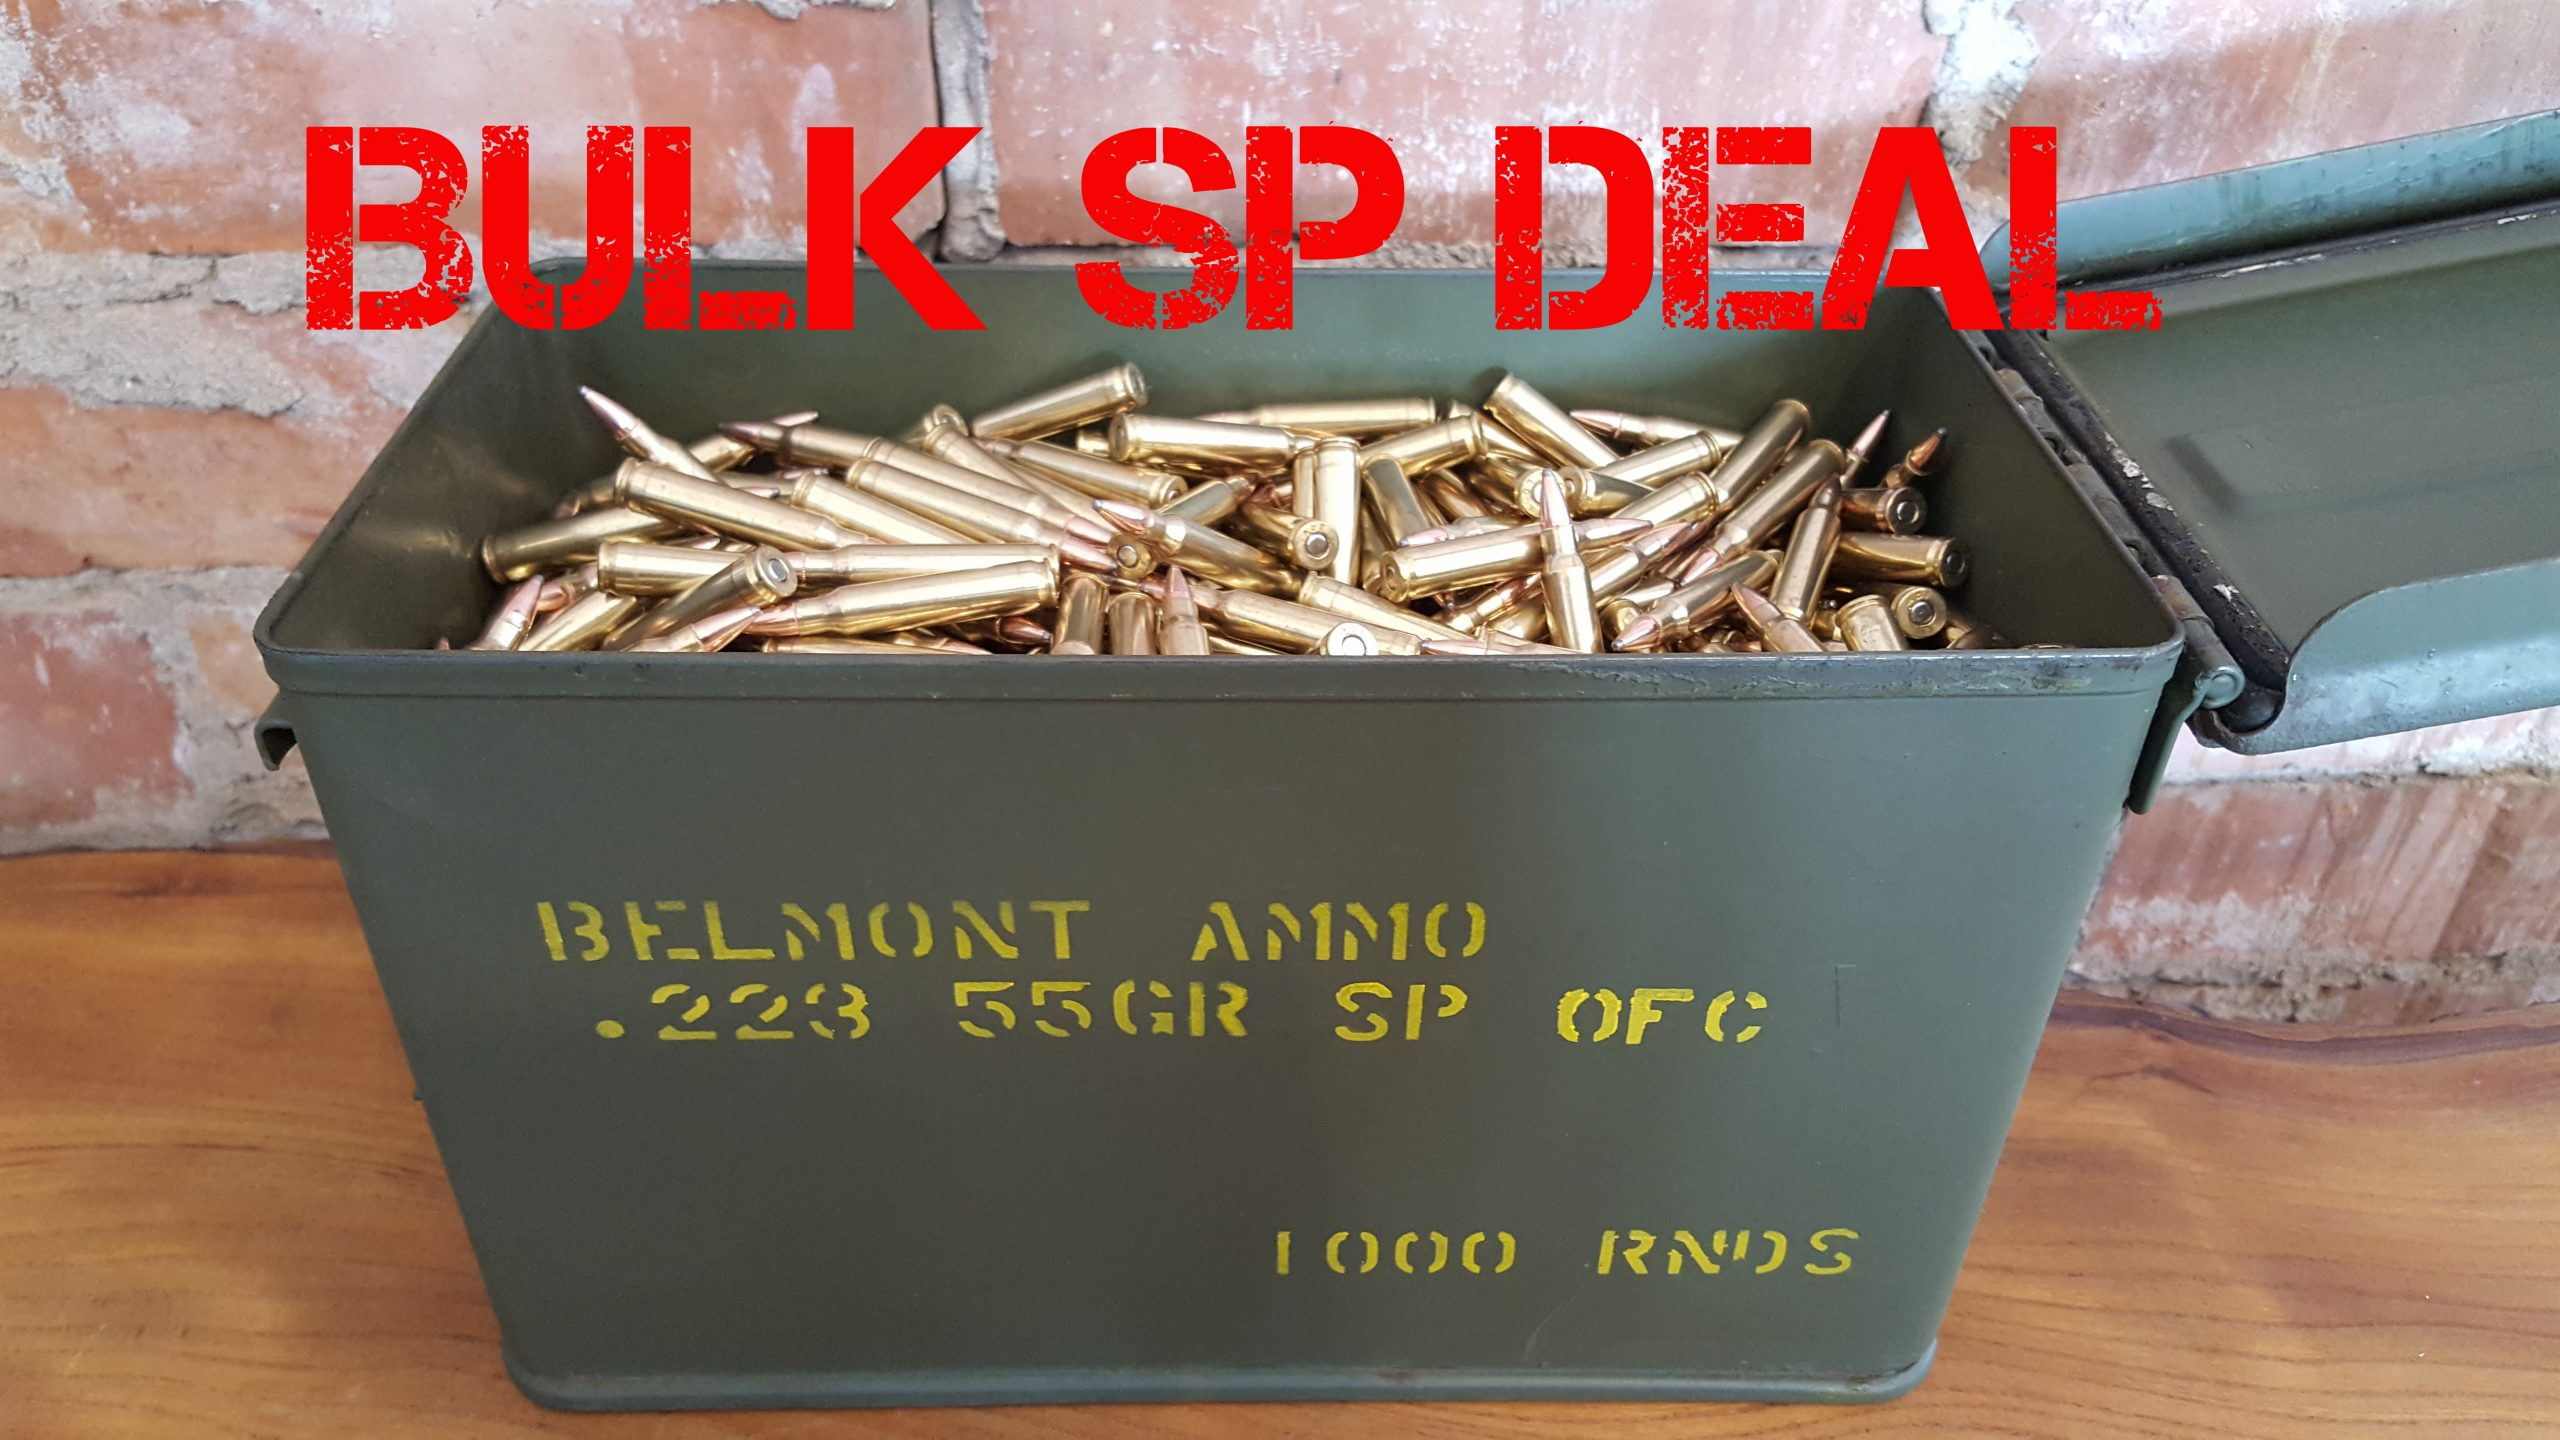 Bulk Deal! 1000 Rounds .223 SP for just $599.00 delivered.